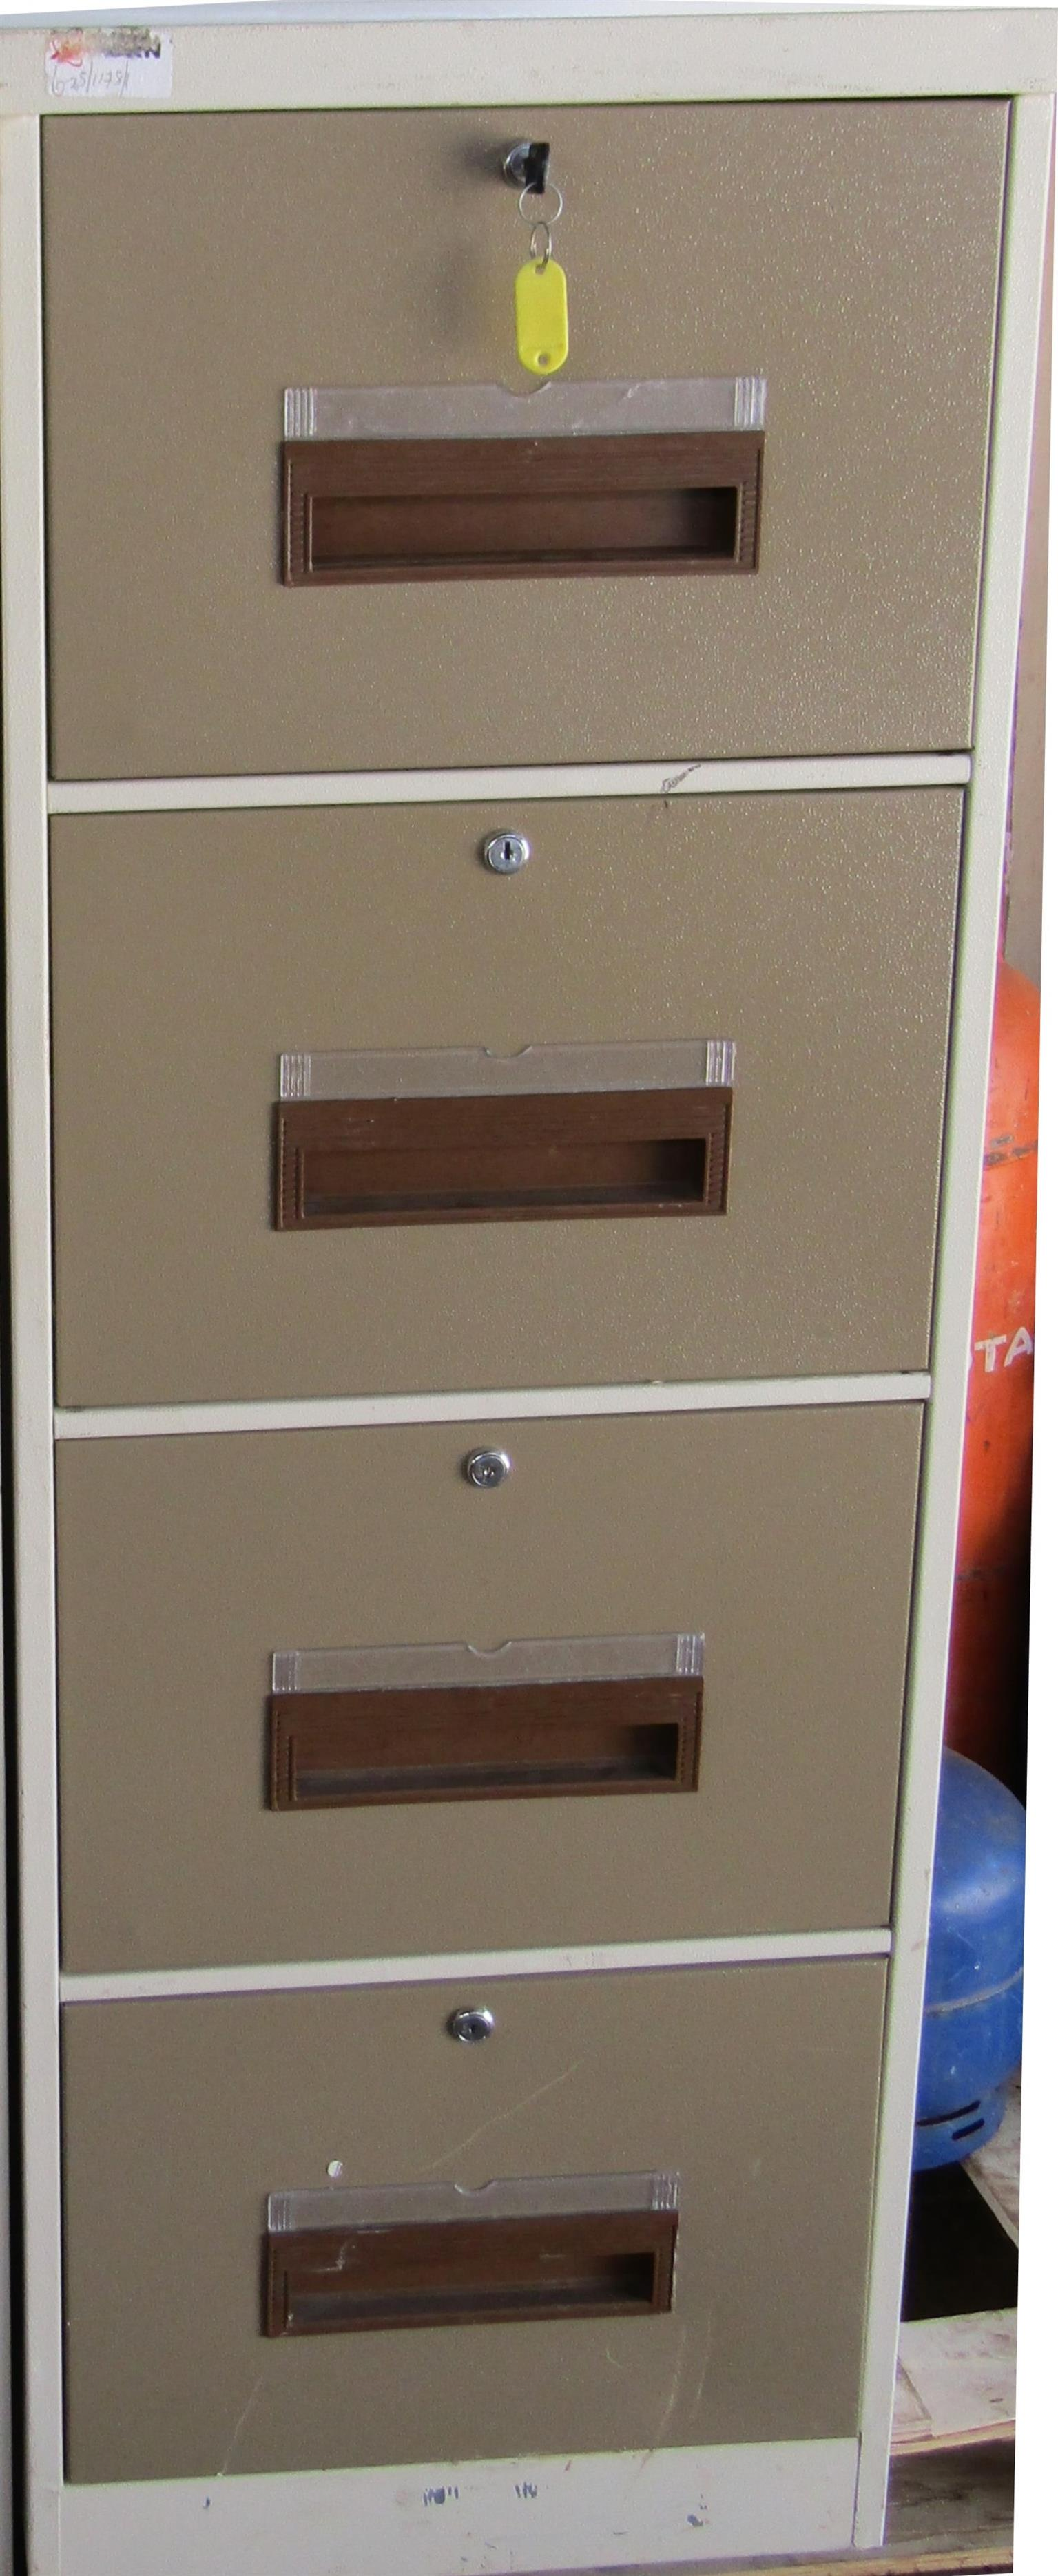 4 Drawer Steel Drawer Filing Cabinet